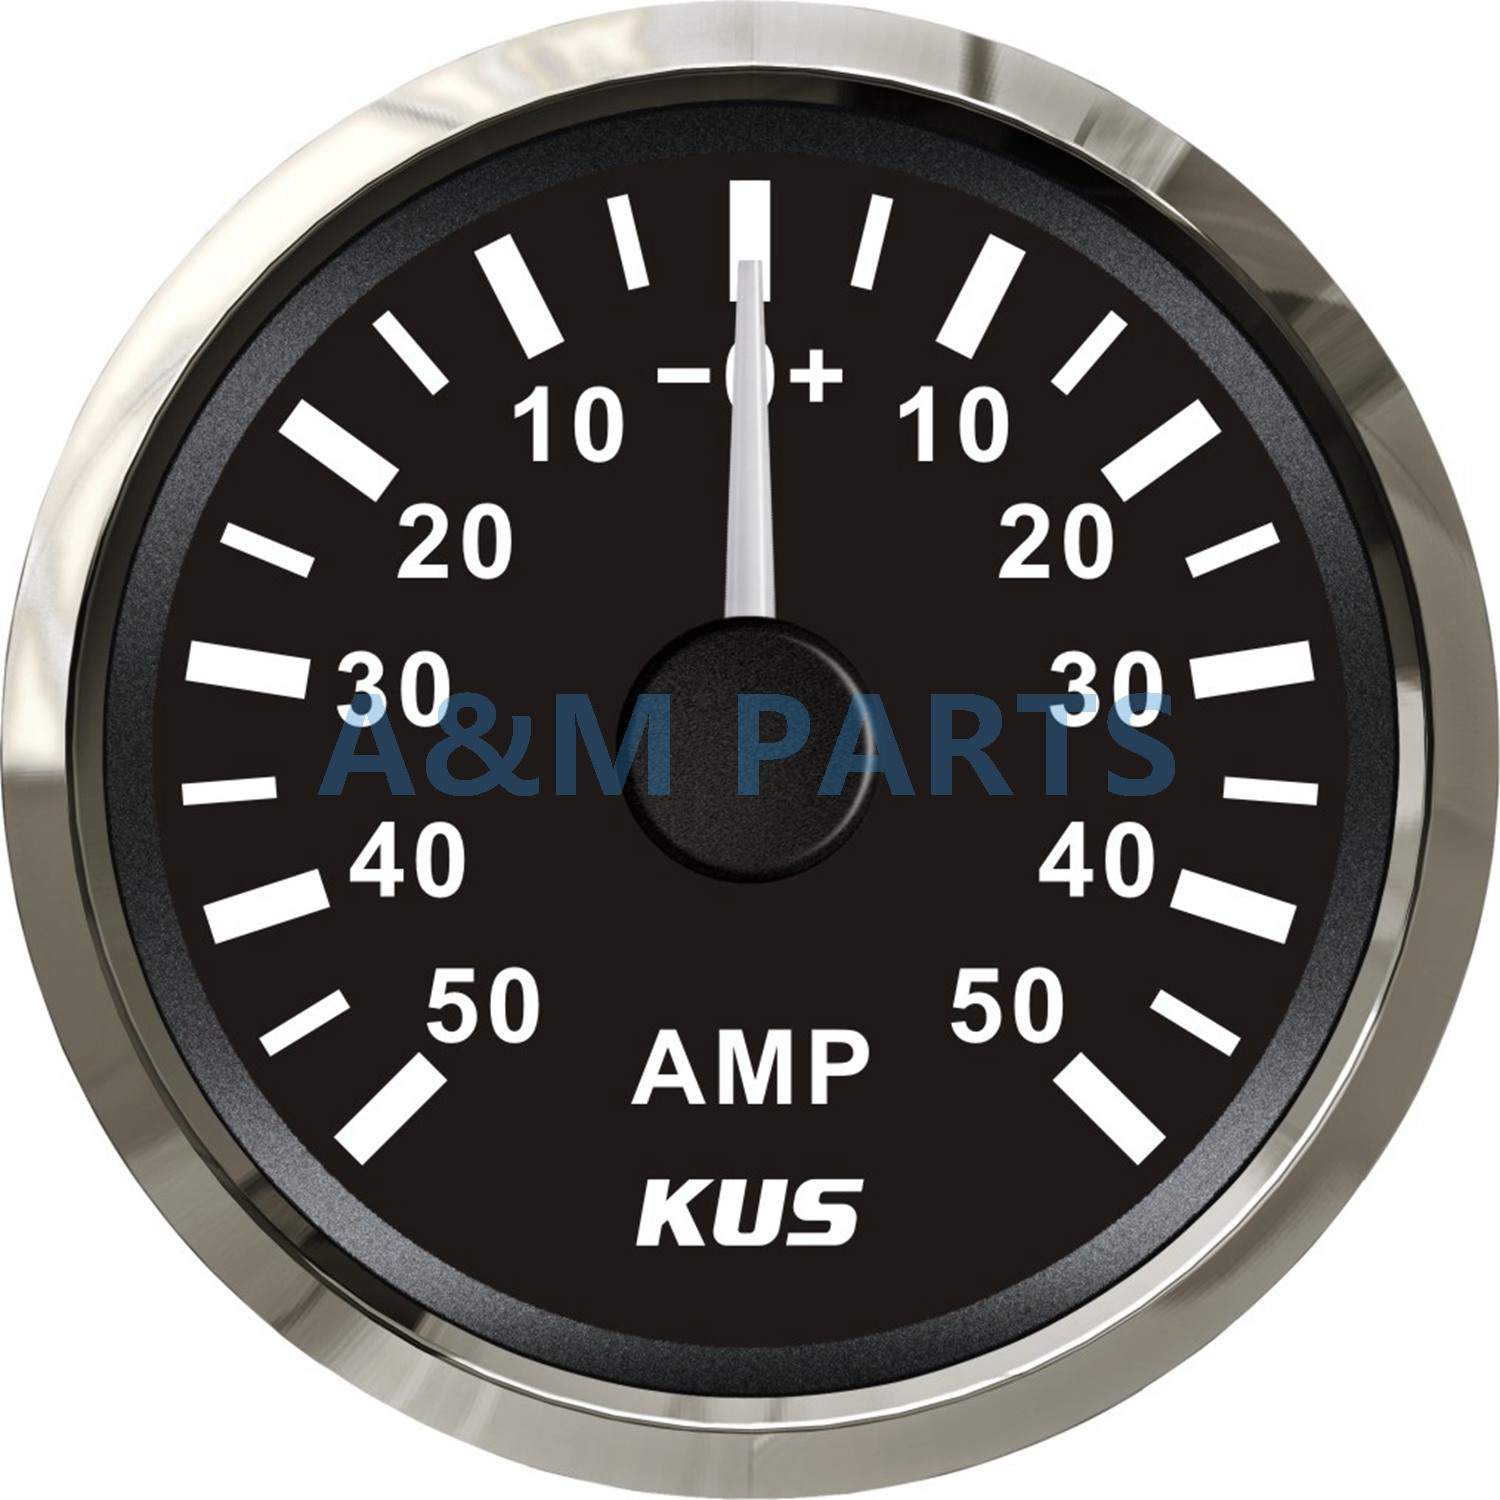 KUS Boat Ammeter Marine AMP Meter Gauge W/ Current Shunt Pick-up Unit 12/24V 50A dc 100a analog ammeter panel amp current meter 85c1 gauge 0 100a dc shunt